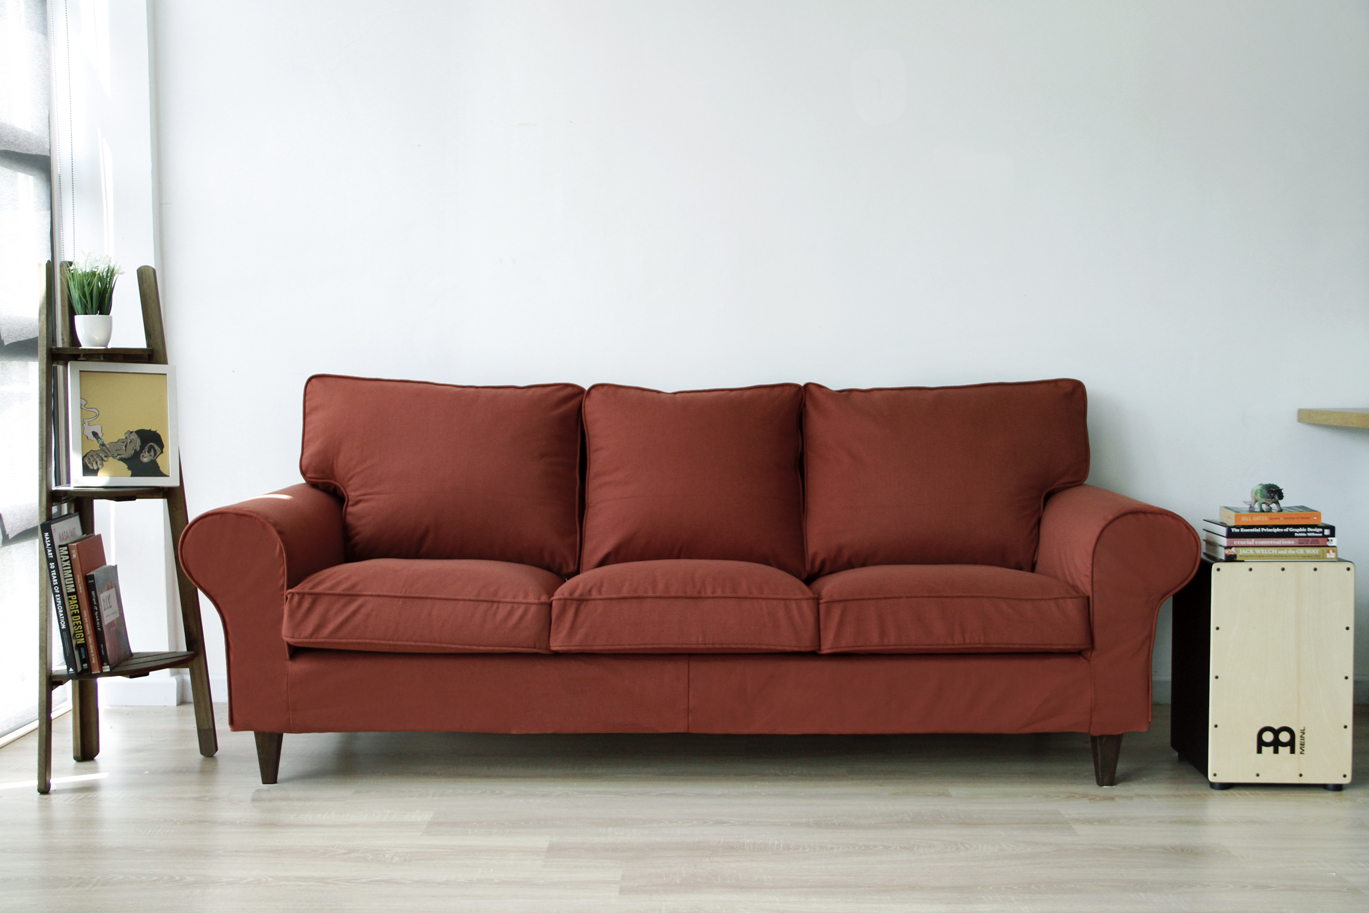 Can Where Cheap I Buy Couch